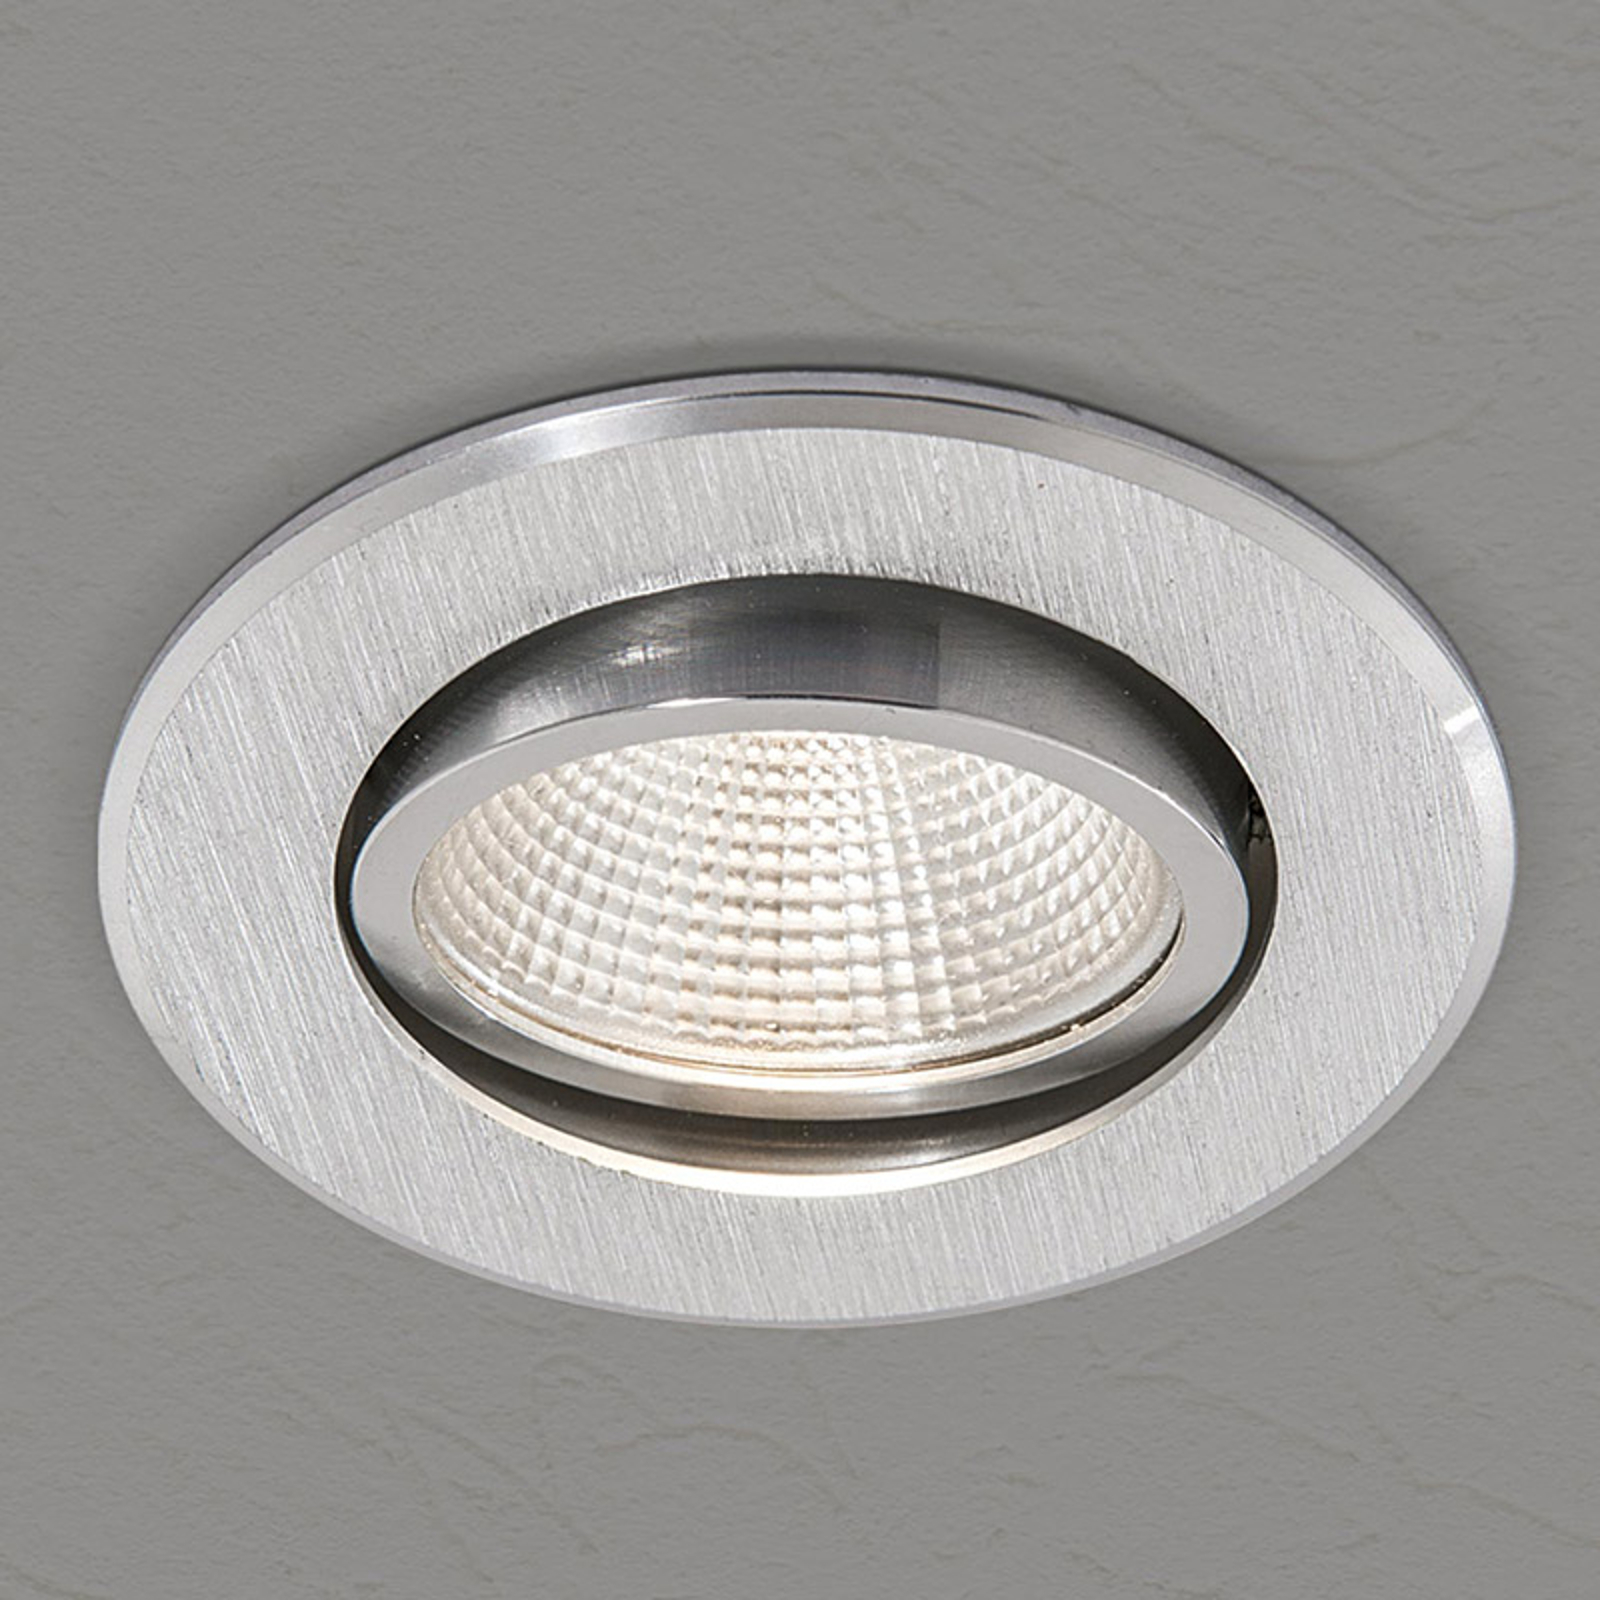 Plafonnier encastrable LED Sabet, rond